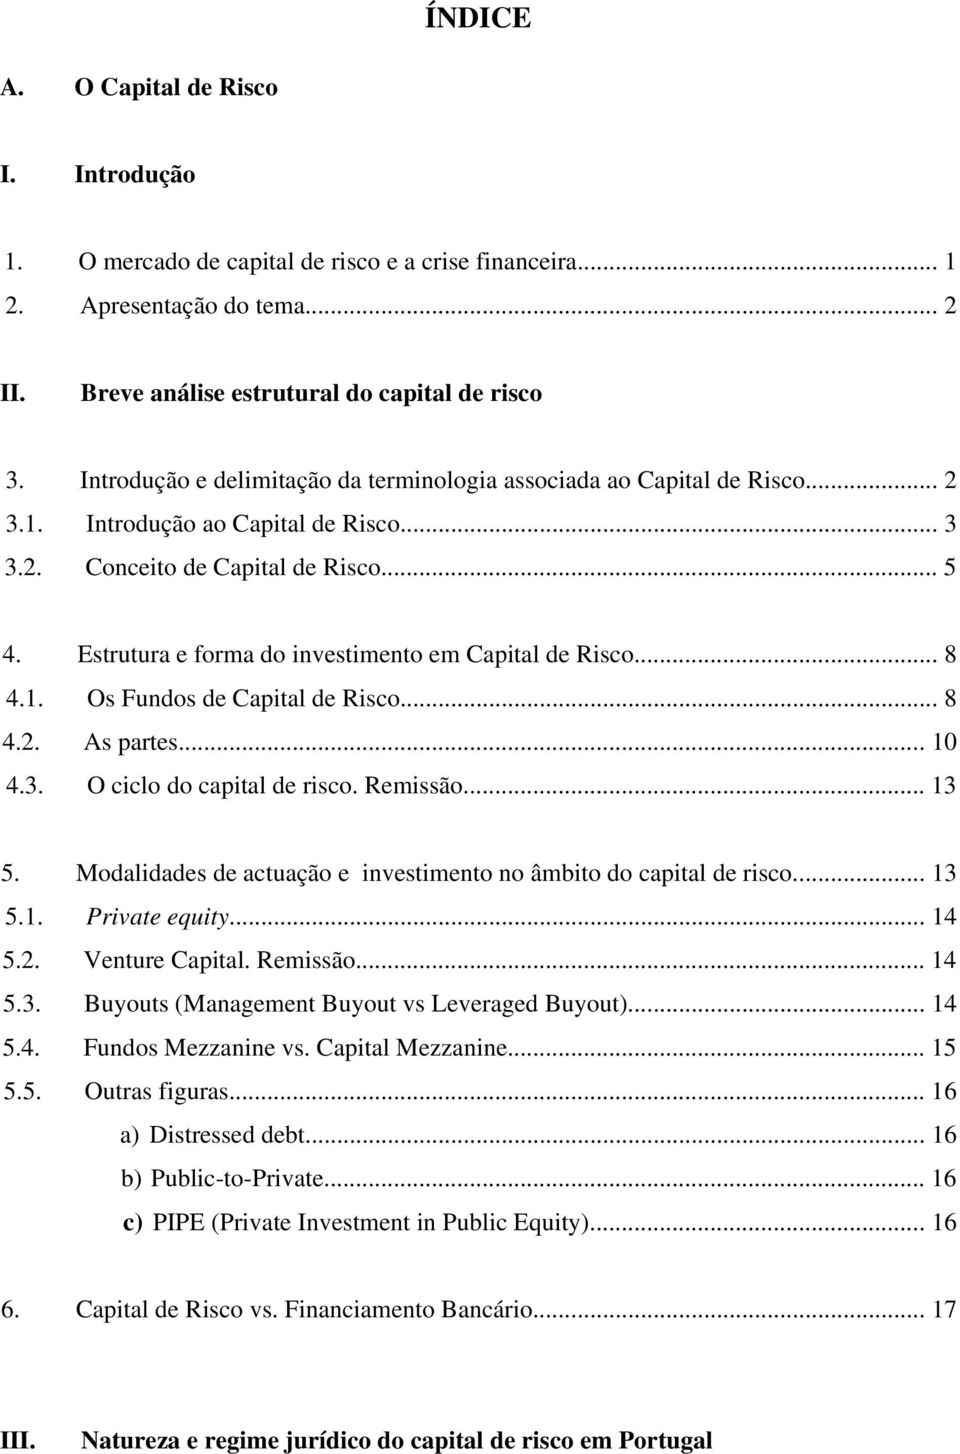 Estrutura e forma do investimento em Capital de Risco... 8 4.1. Os Fundos de Capital de Risco... 8 4.2. As partes... 10 4.3. O ciclo do capital de risco. Remissão... 13 5.